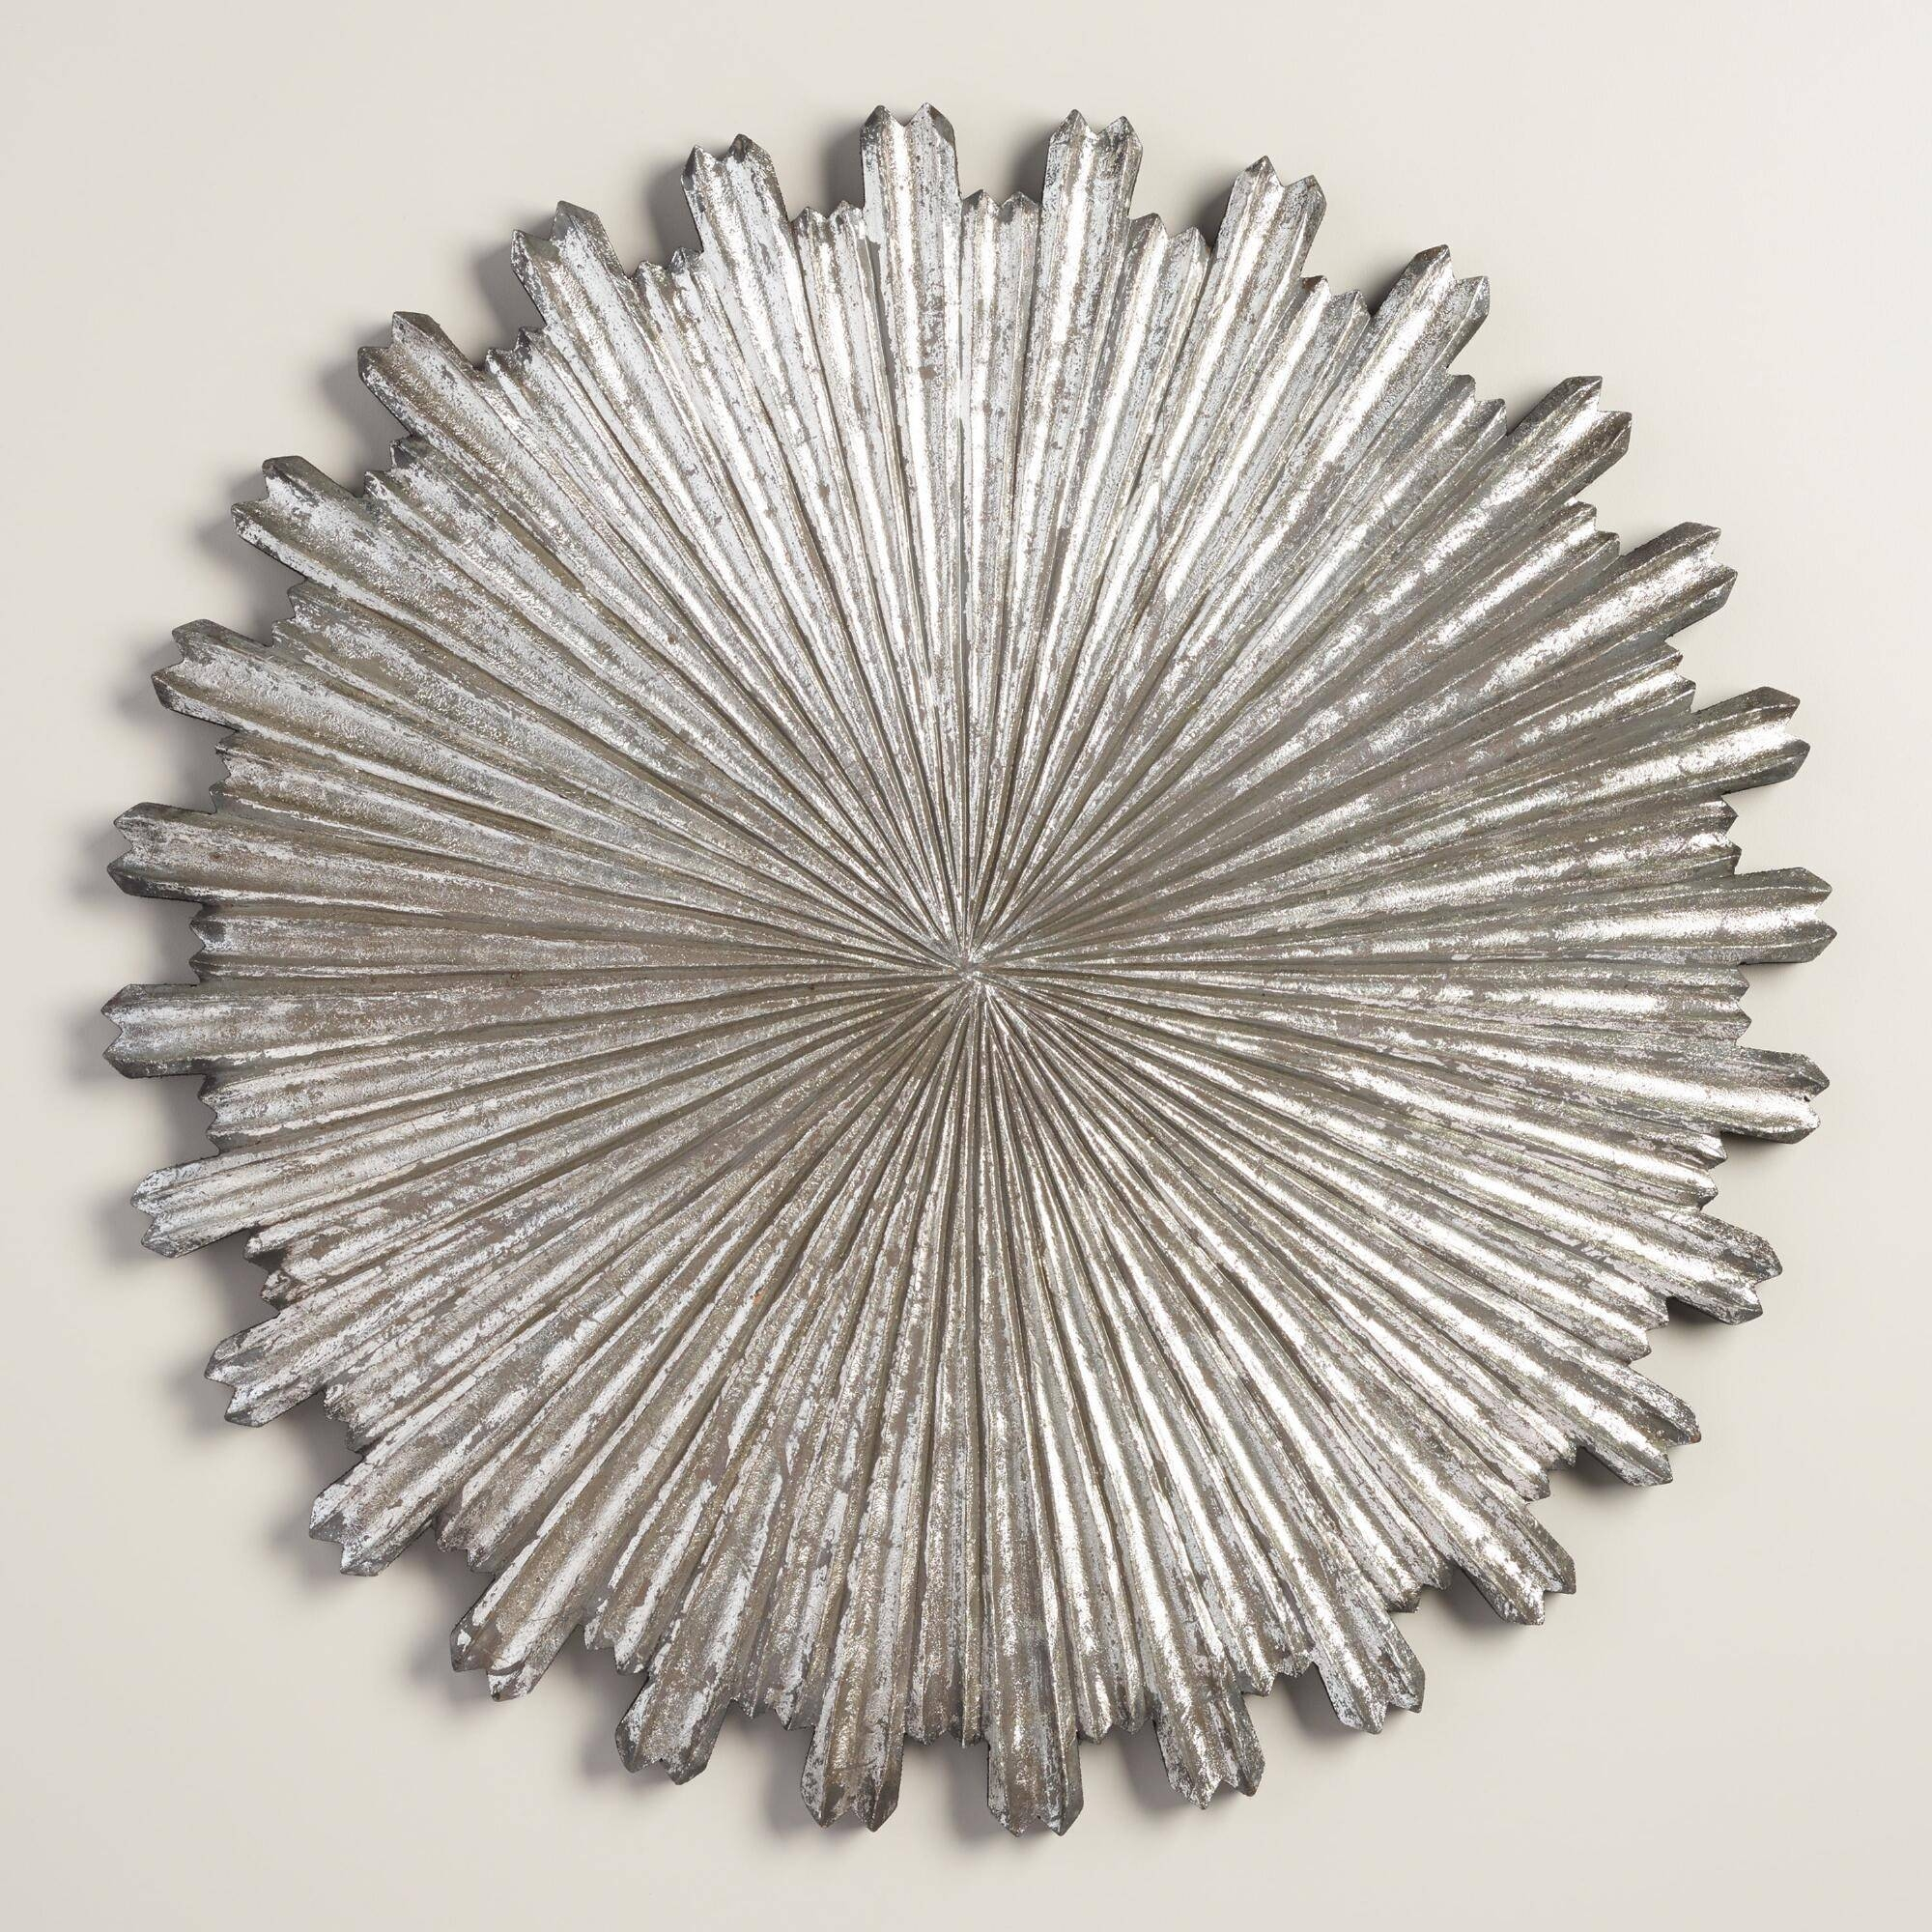 Wall Art Designs: Silver Metal Wall Art Silver Wall Decor On Metal Inside Recent Small Metal Wall Art (Gallery 15 of 20)